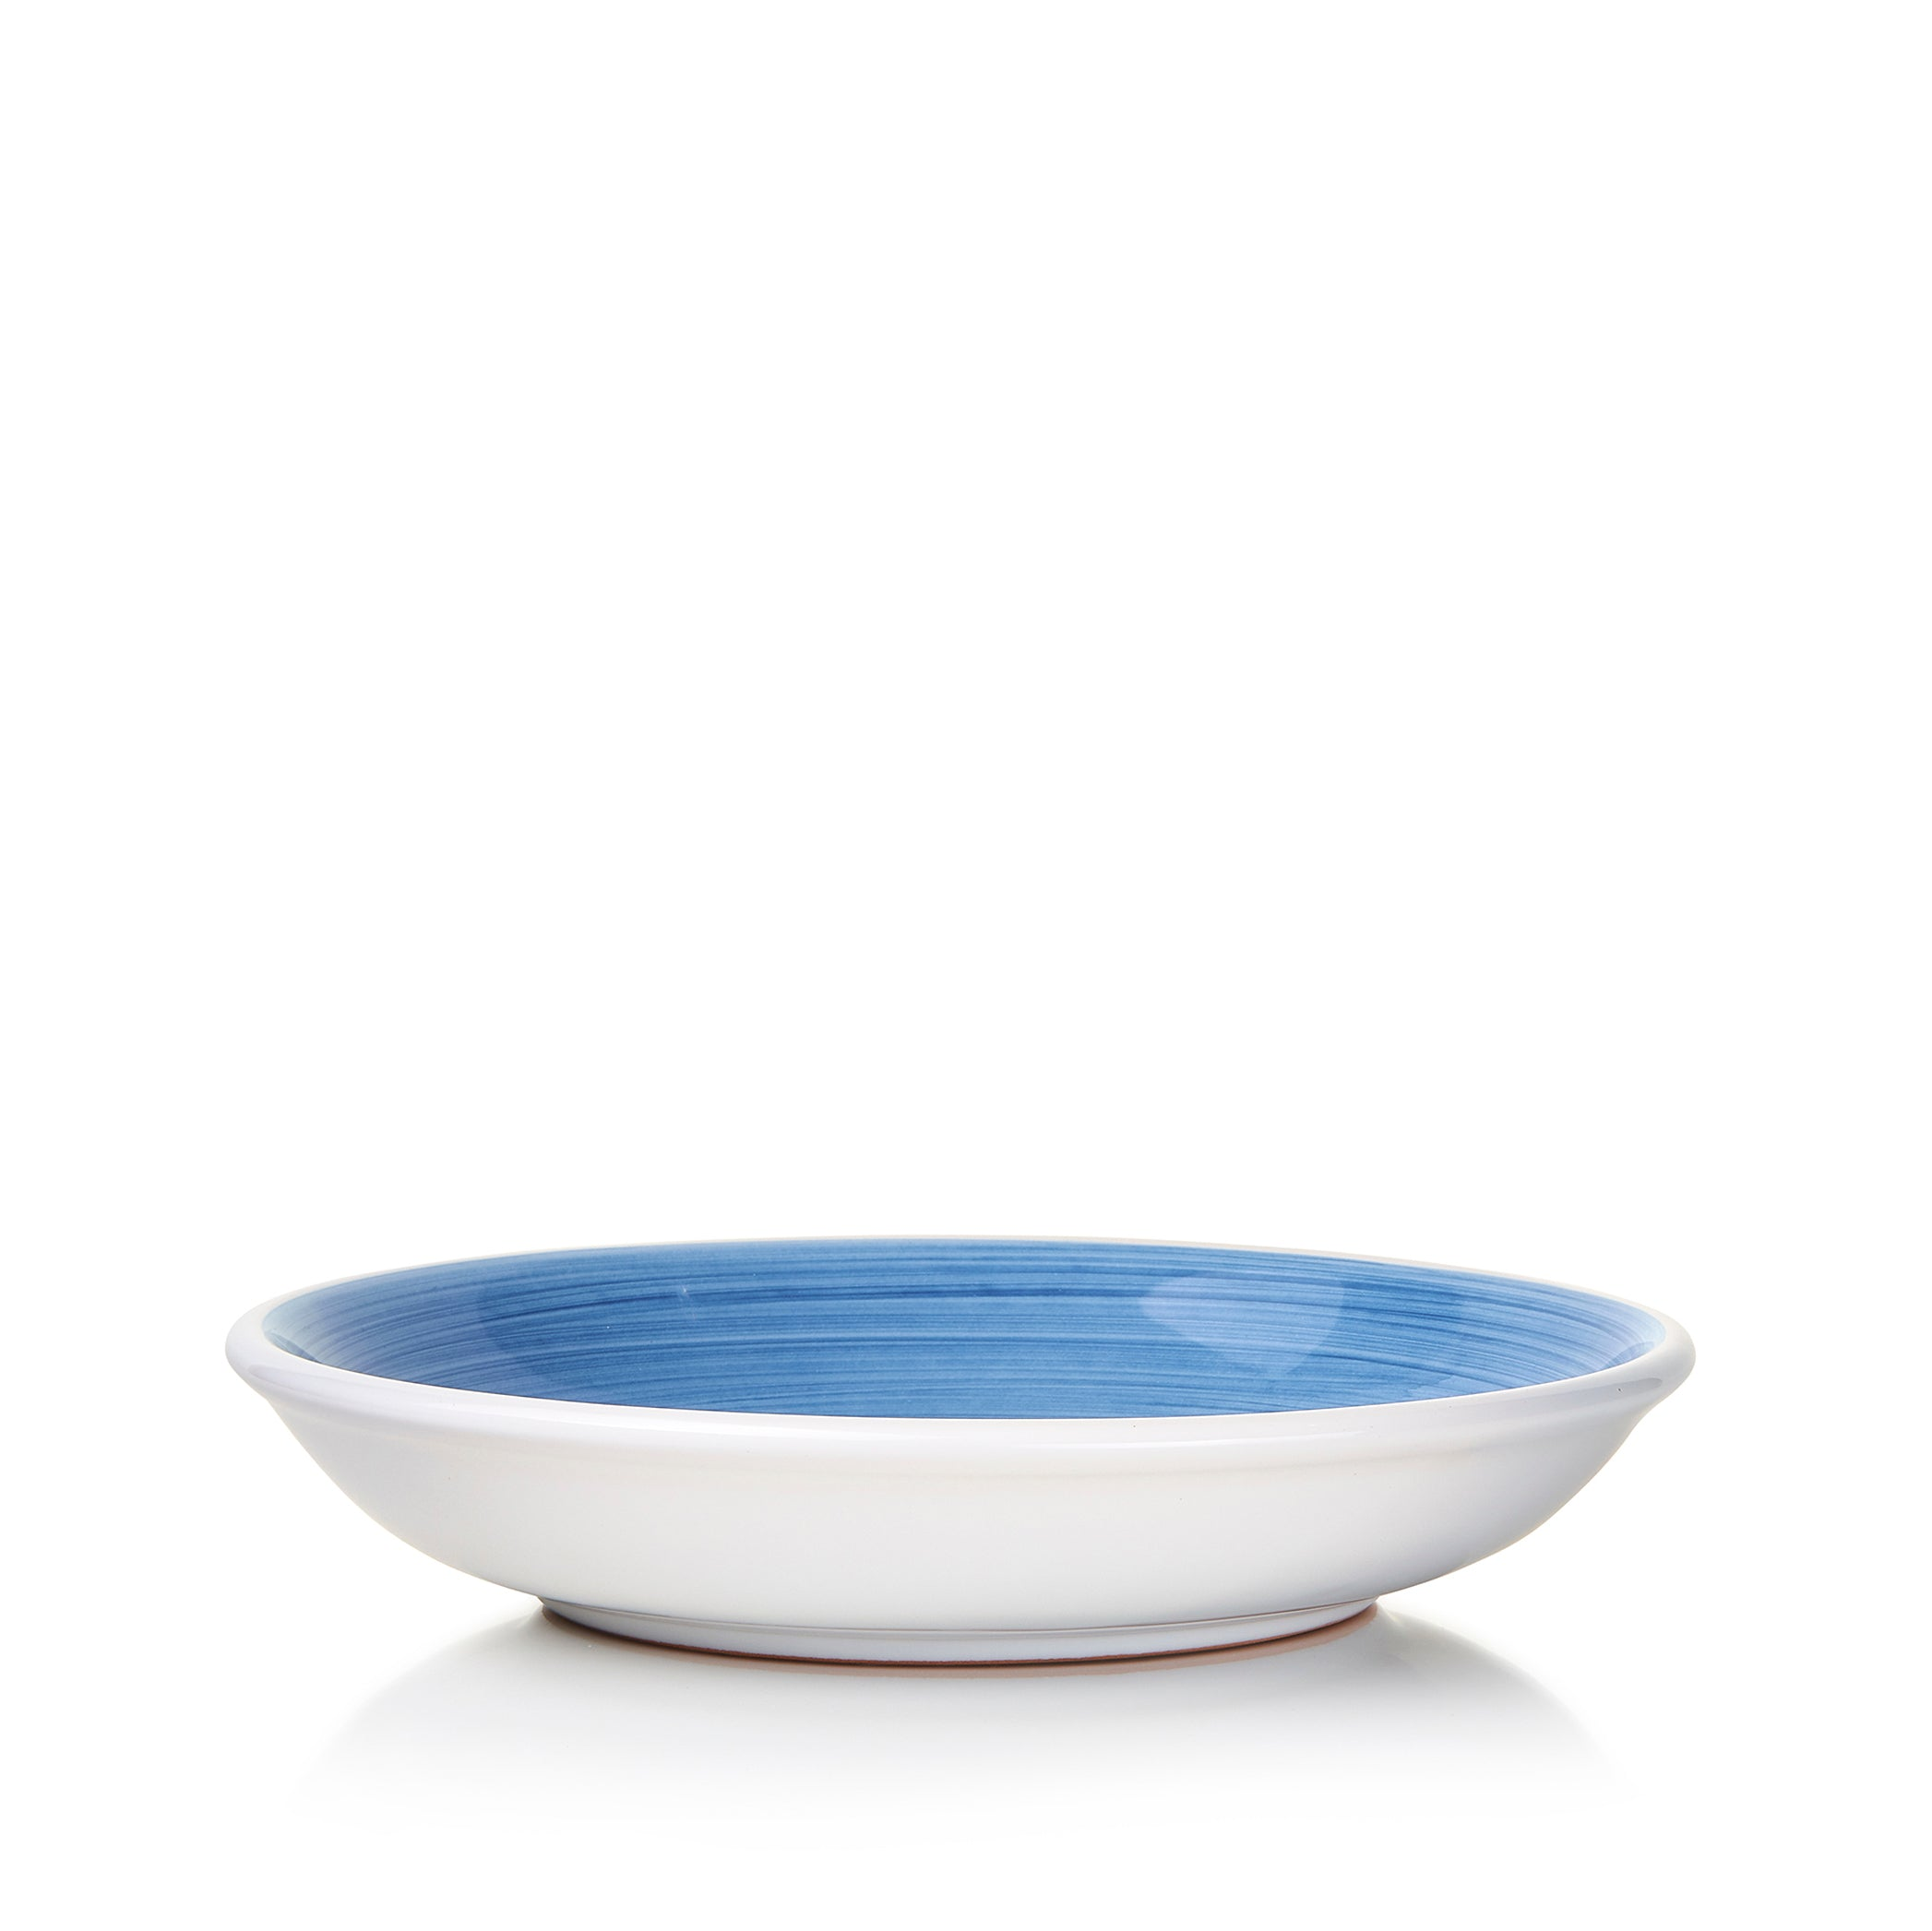 S&B 'Brushed' Ceramic Pasta Bowl in Light Blue, 22cm